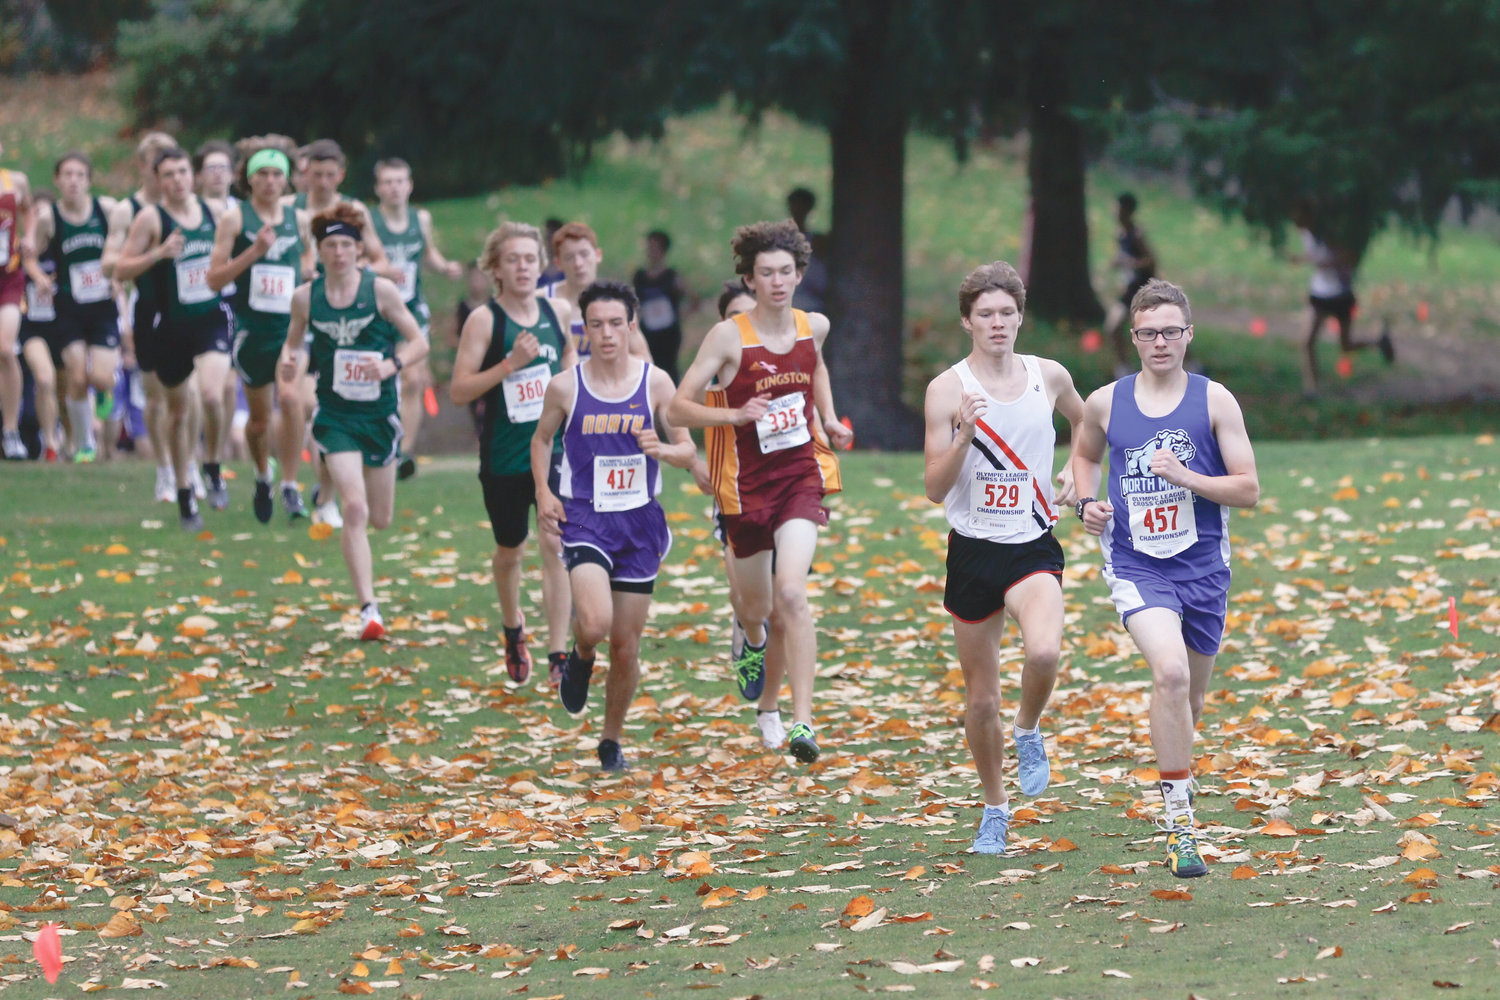 Nathan Cantrell hangs just behind a runner from North Mason, until he passes him in a final push.